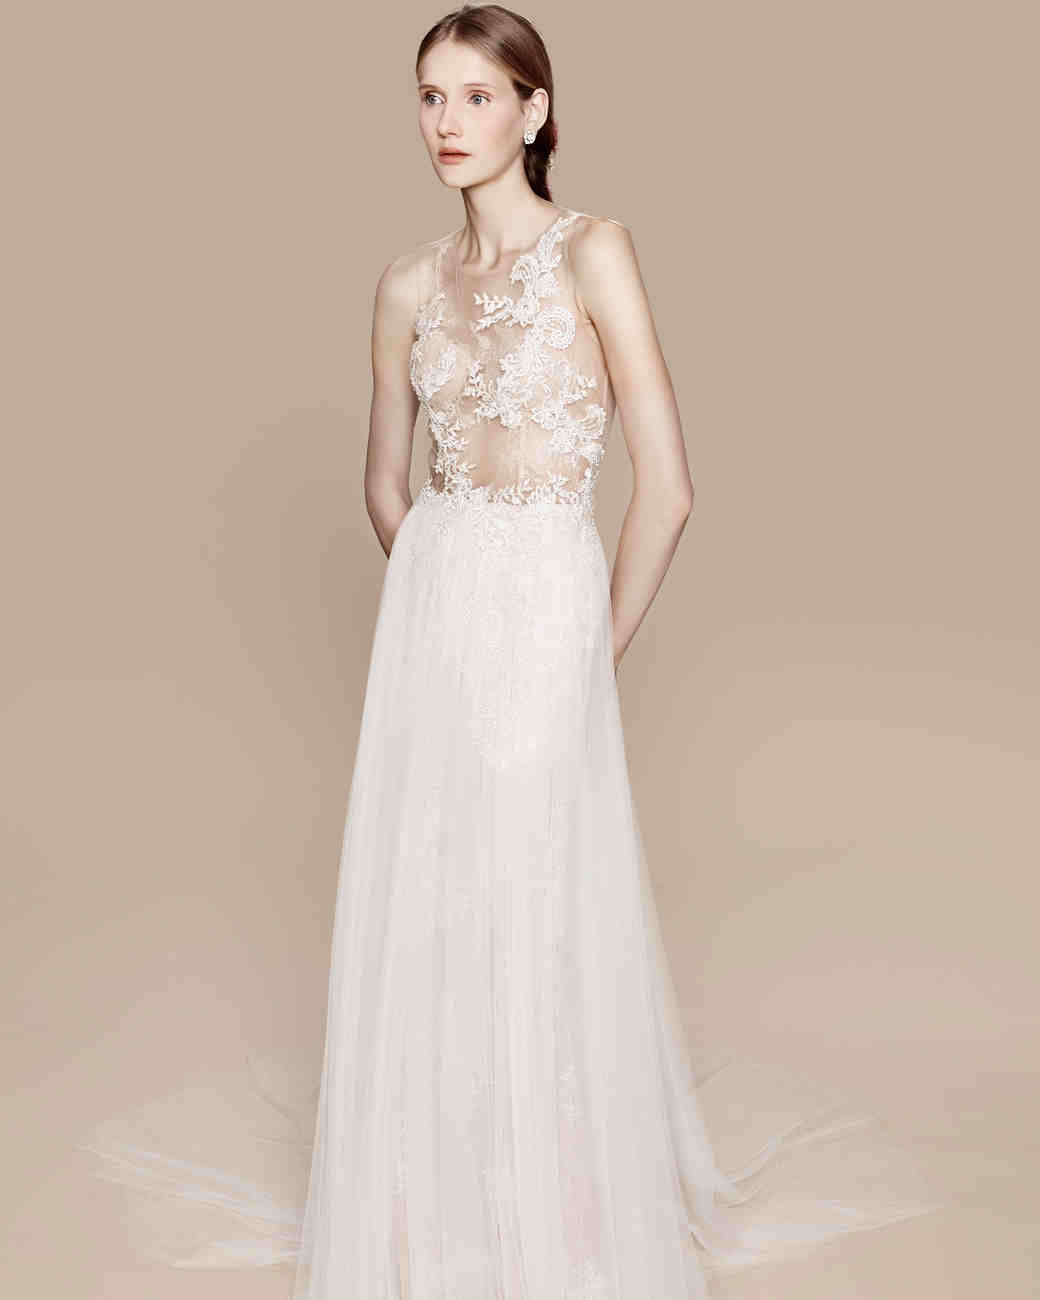 marchesa notte bridal wedding dresses fall marchesa wedding dresses Marchesa Notte Bridal Market